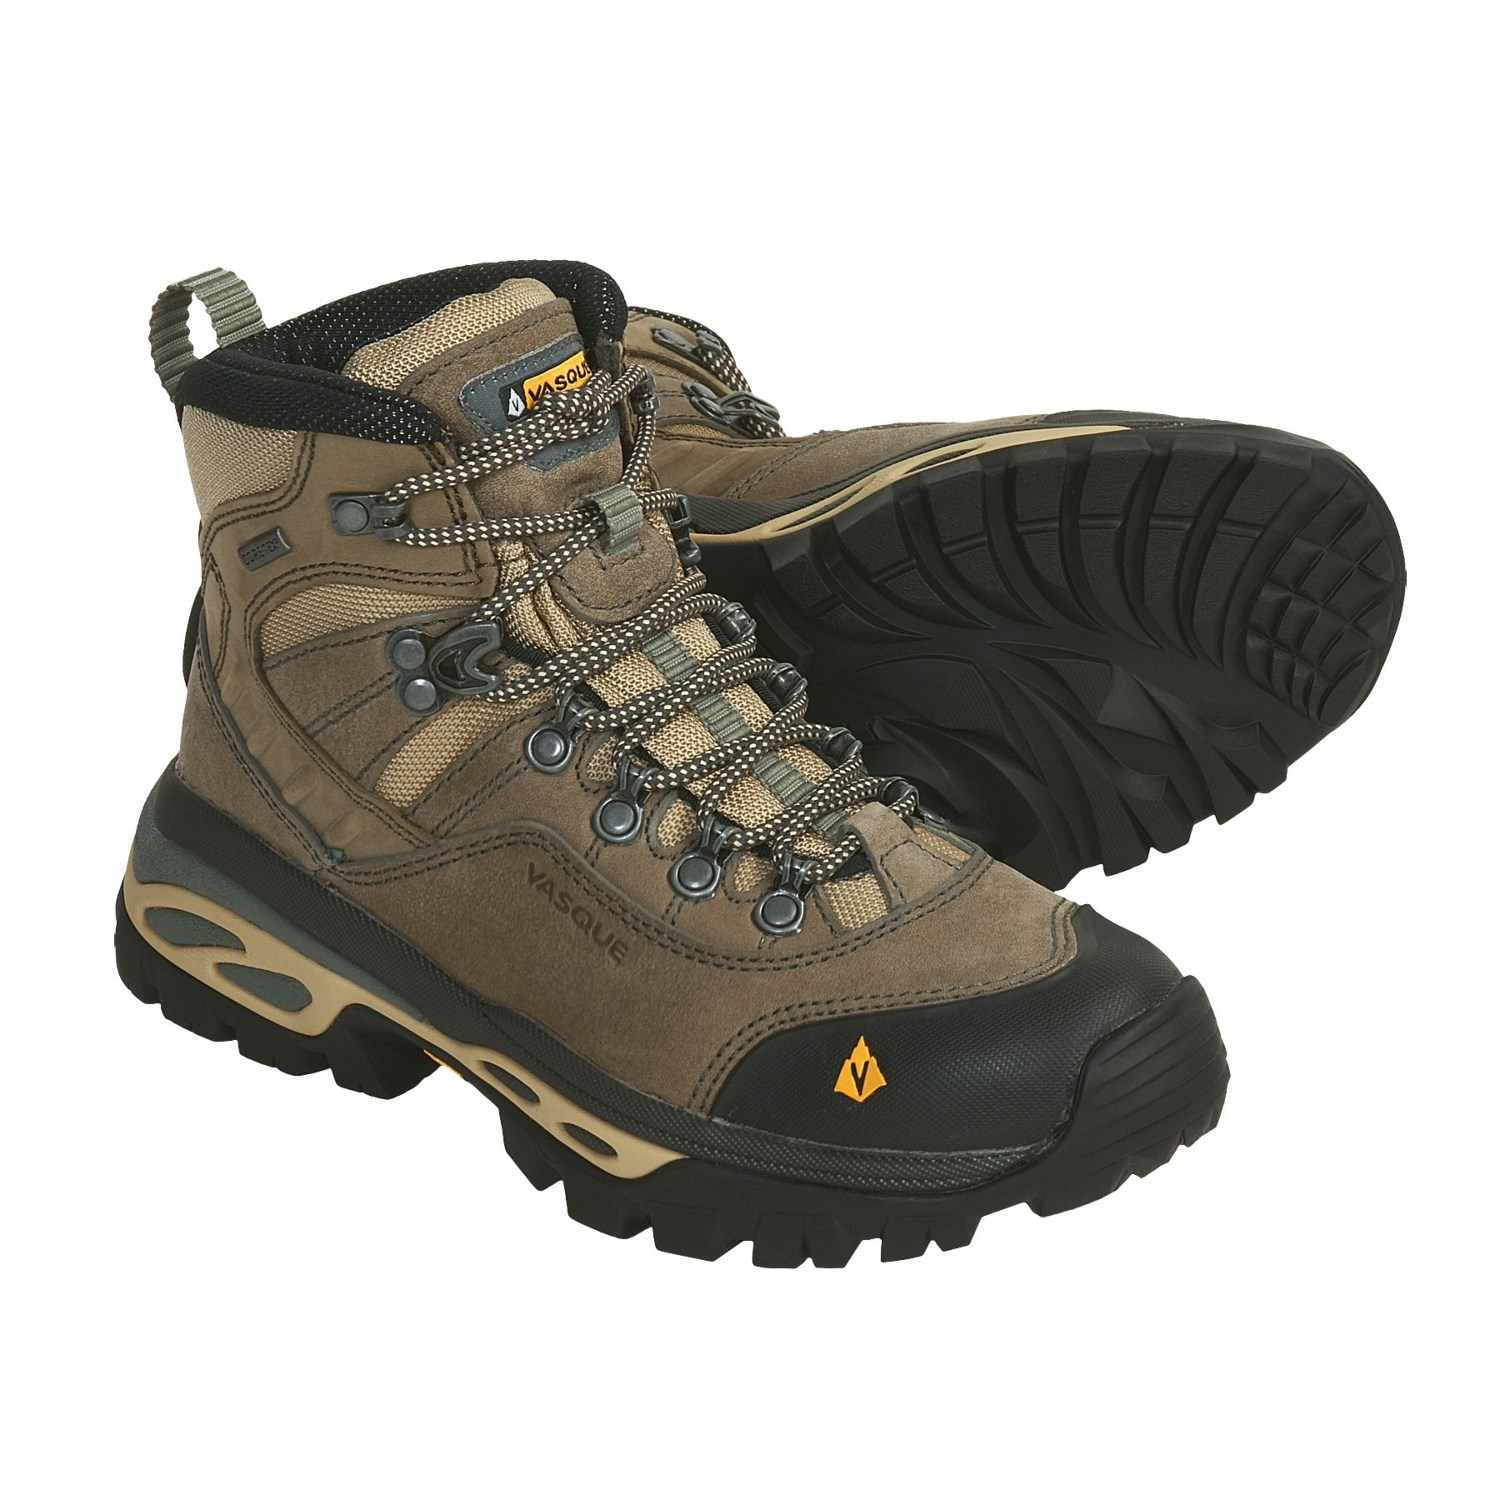 Vasque zephyr ii gore tex hiking boots for women 3013t for Vasque zephyr